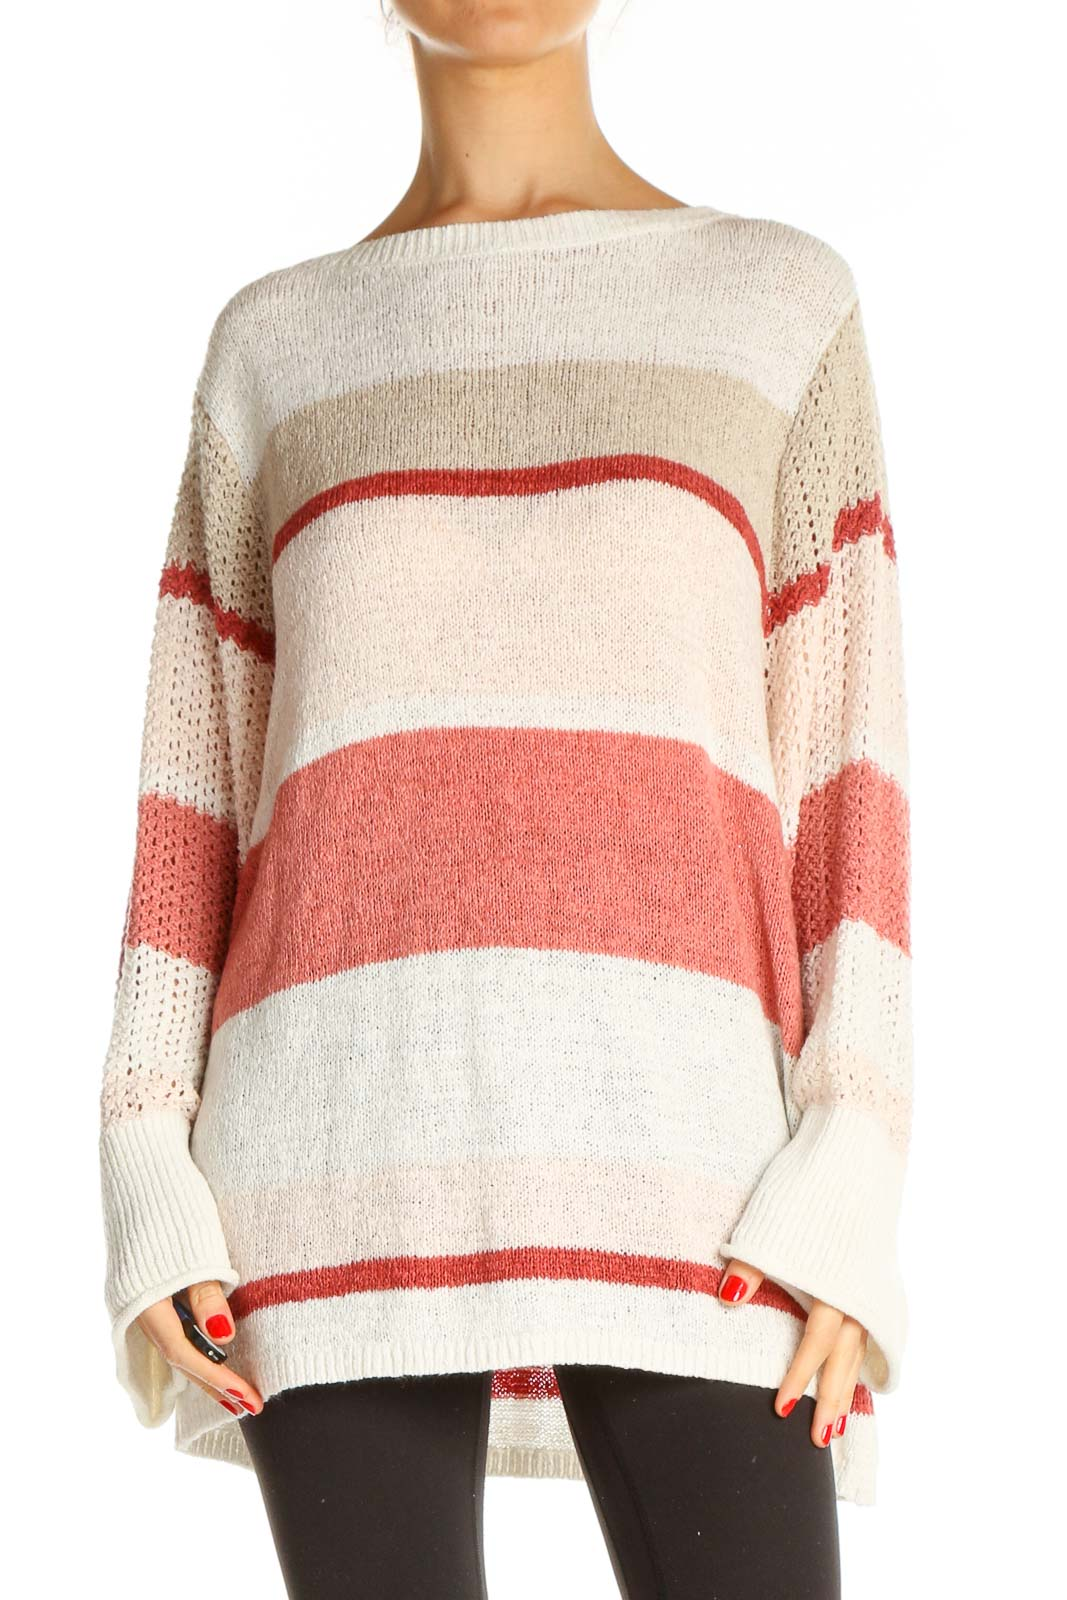 Beige Colorblock All Day Wear Sweater Front